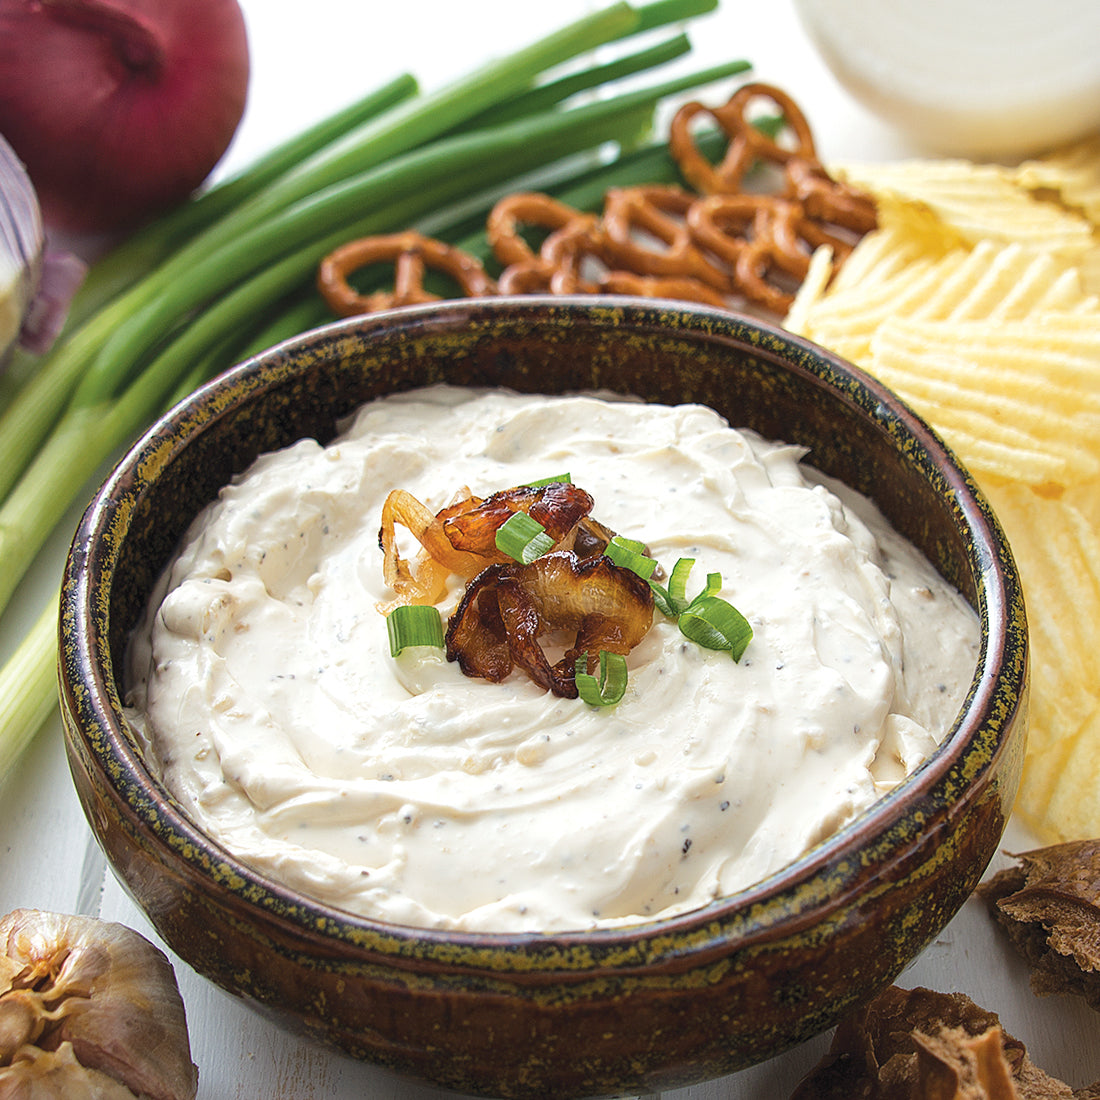 Roasted Garlic and Onion Dip mixed with sour cream and served with chips and pretzels.